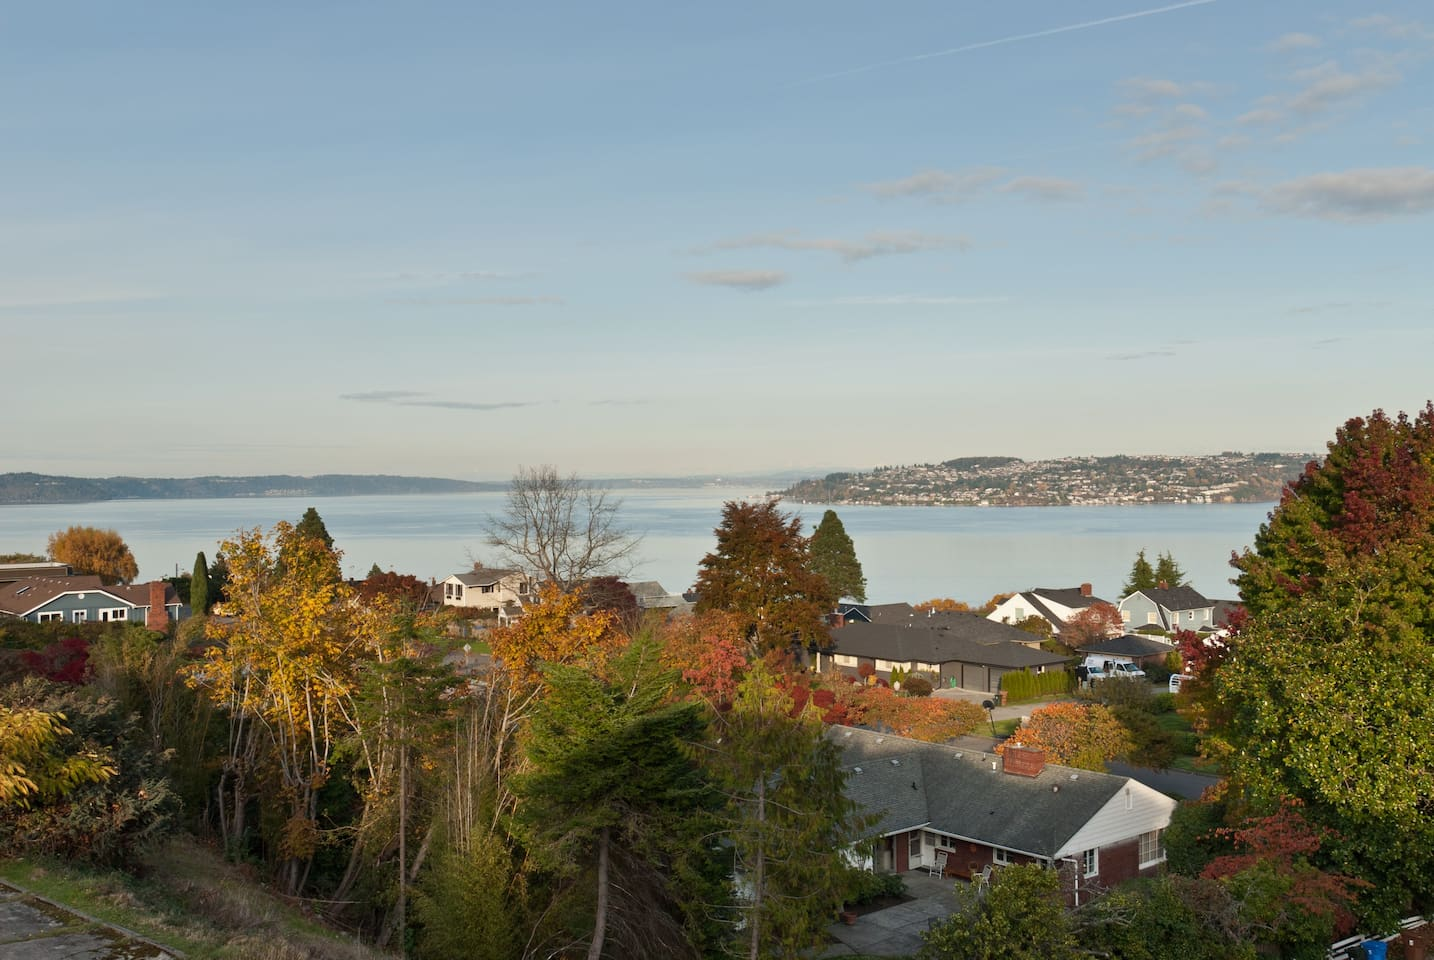 Panoramic views of Commencment Bay, Browns Point, Vashon Island, Mt Rainer and much more...